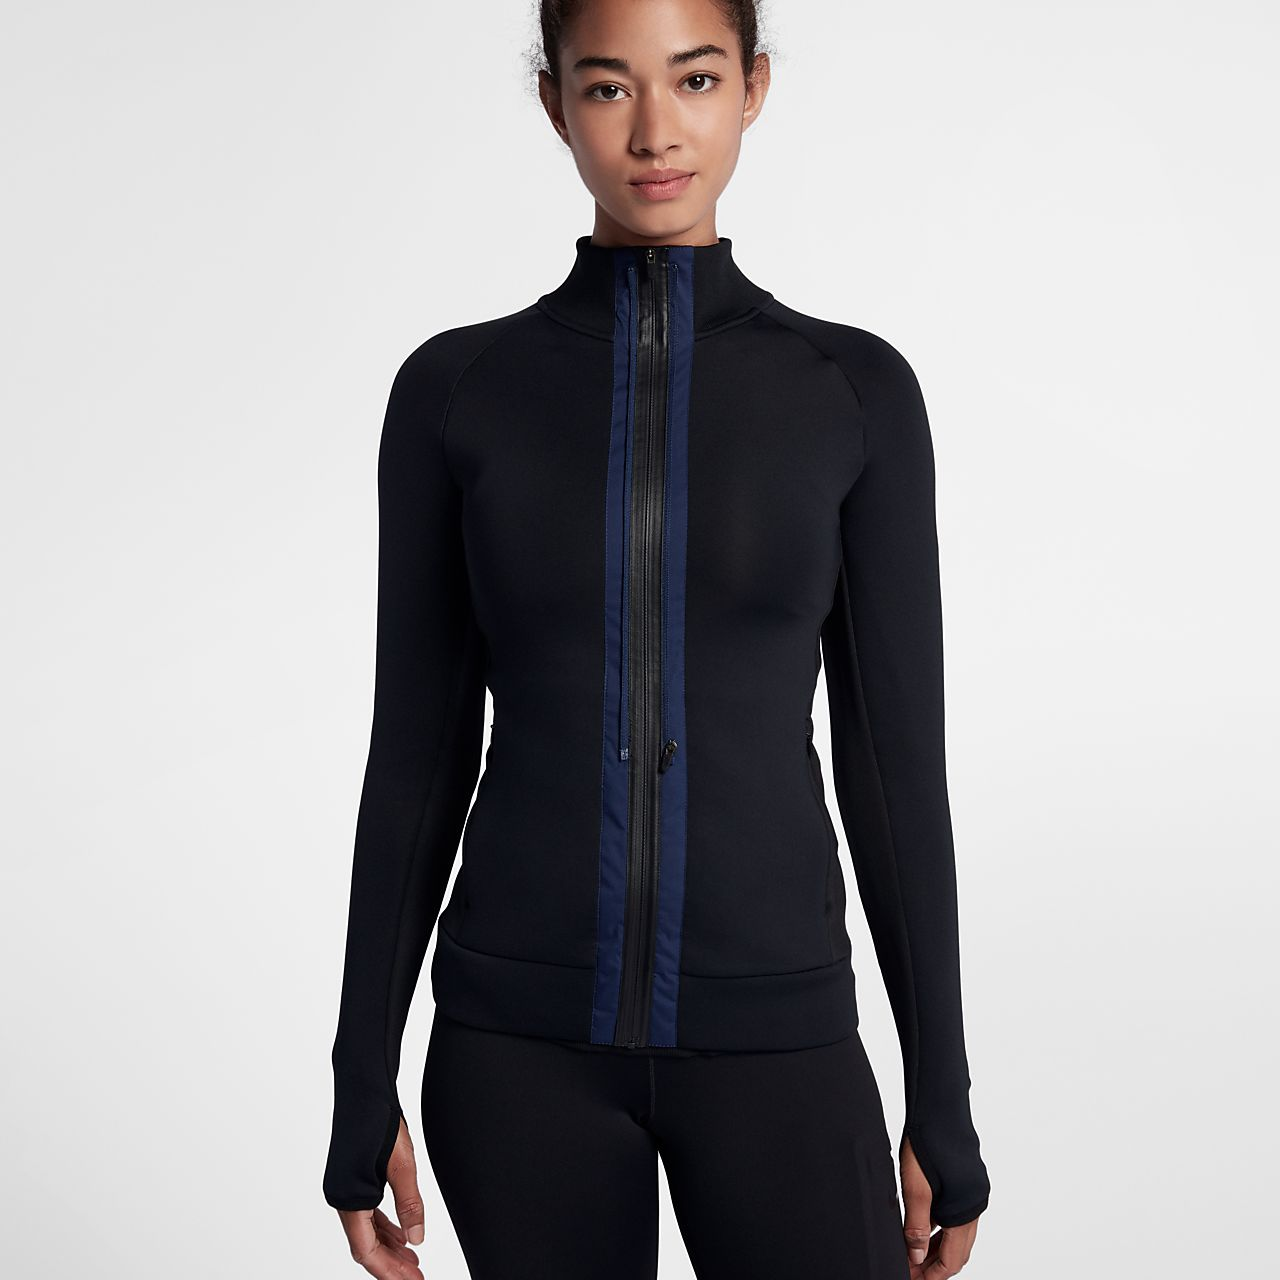 ... Nike Therma Shield 2-in-1 Women's Training Jacket